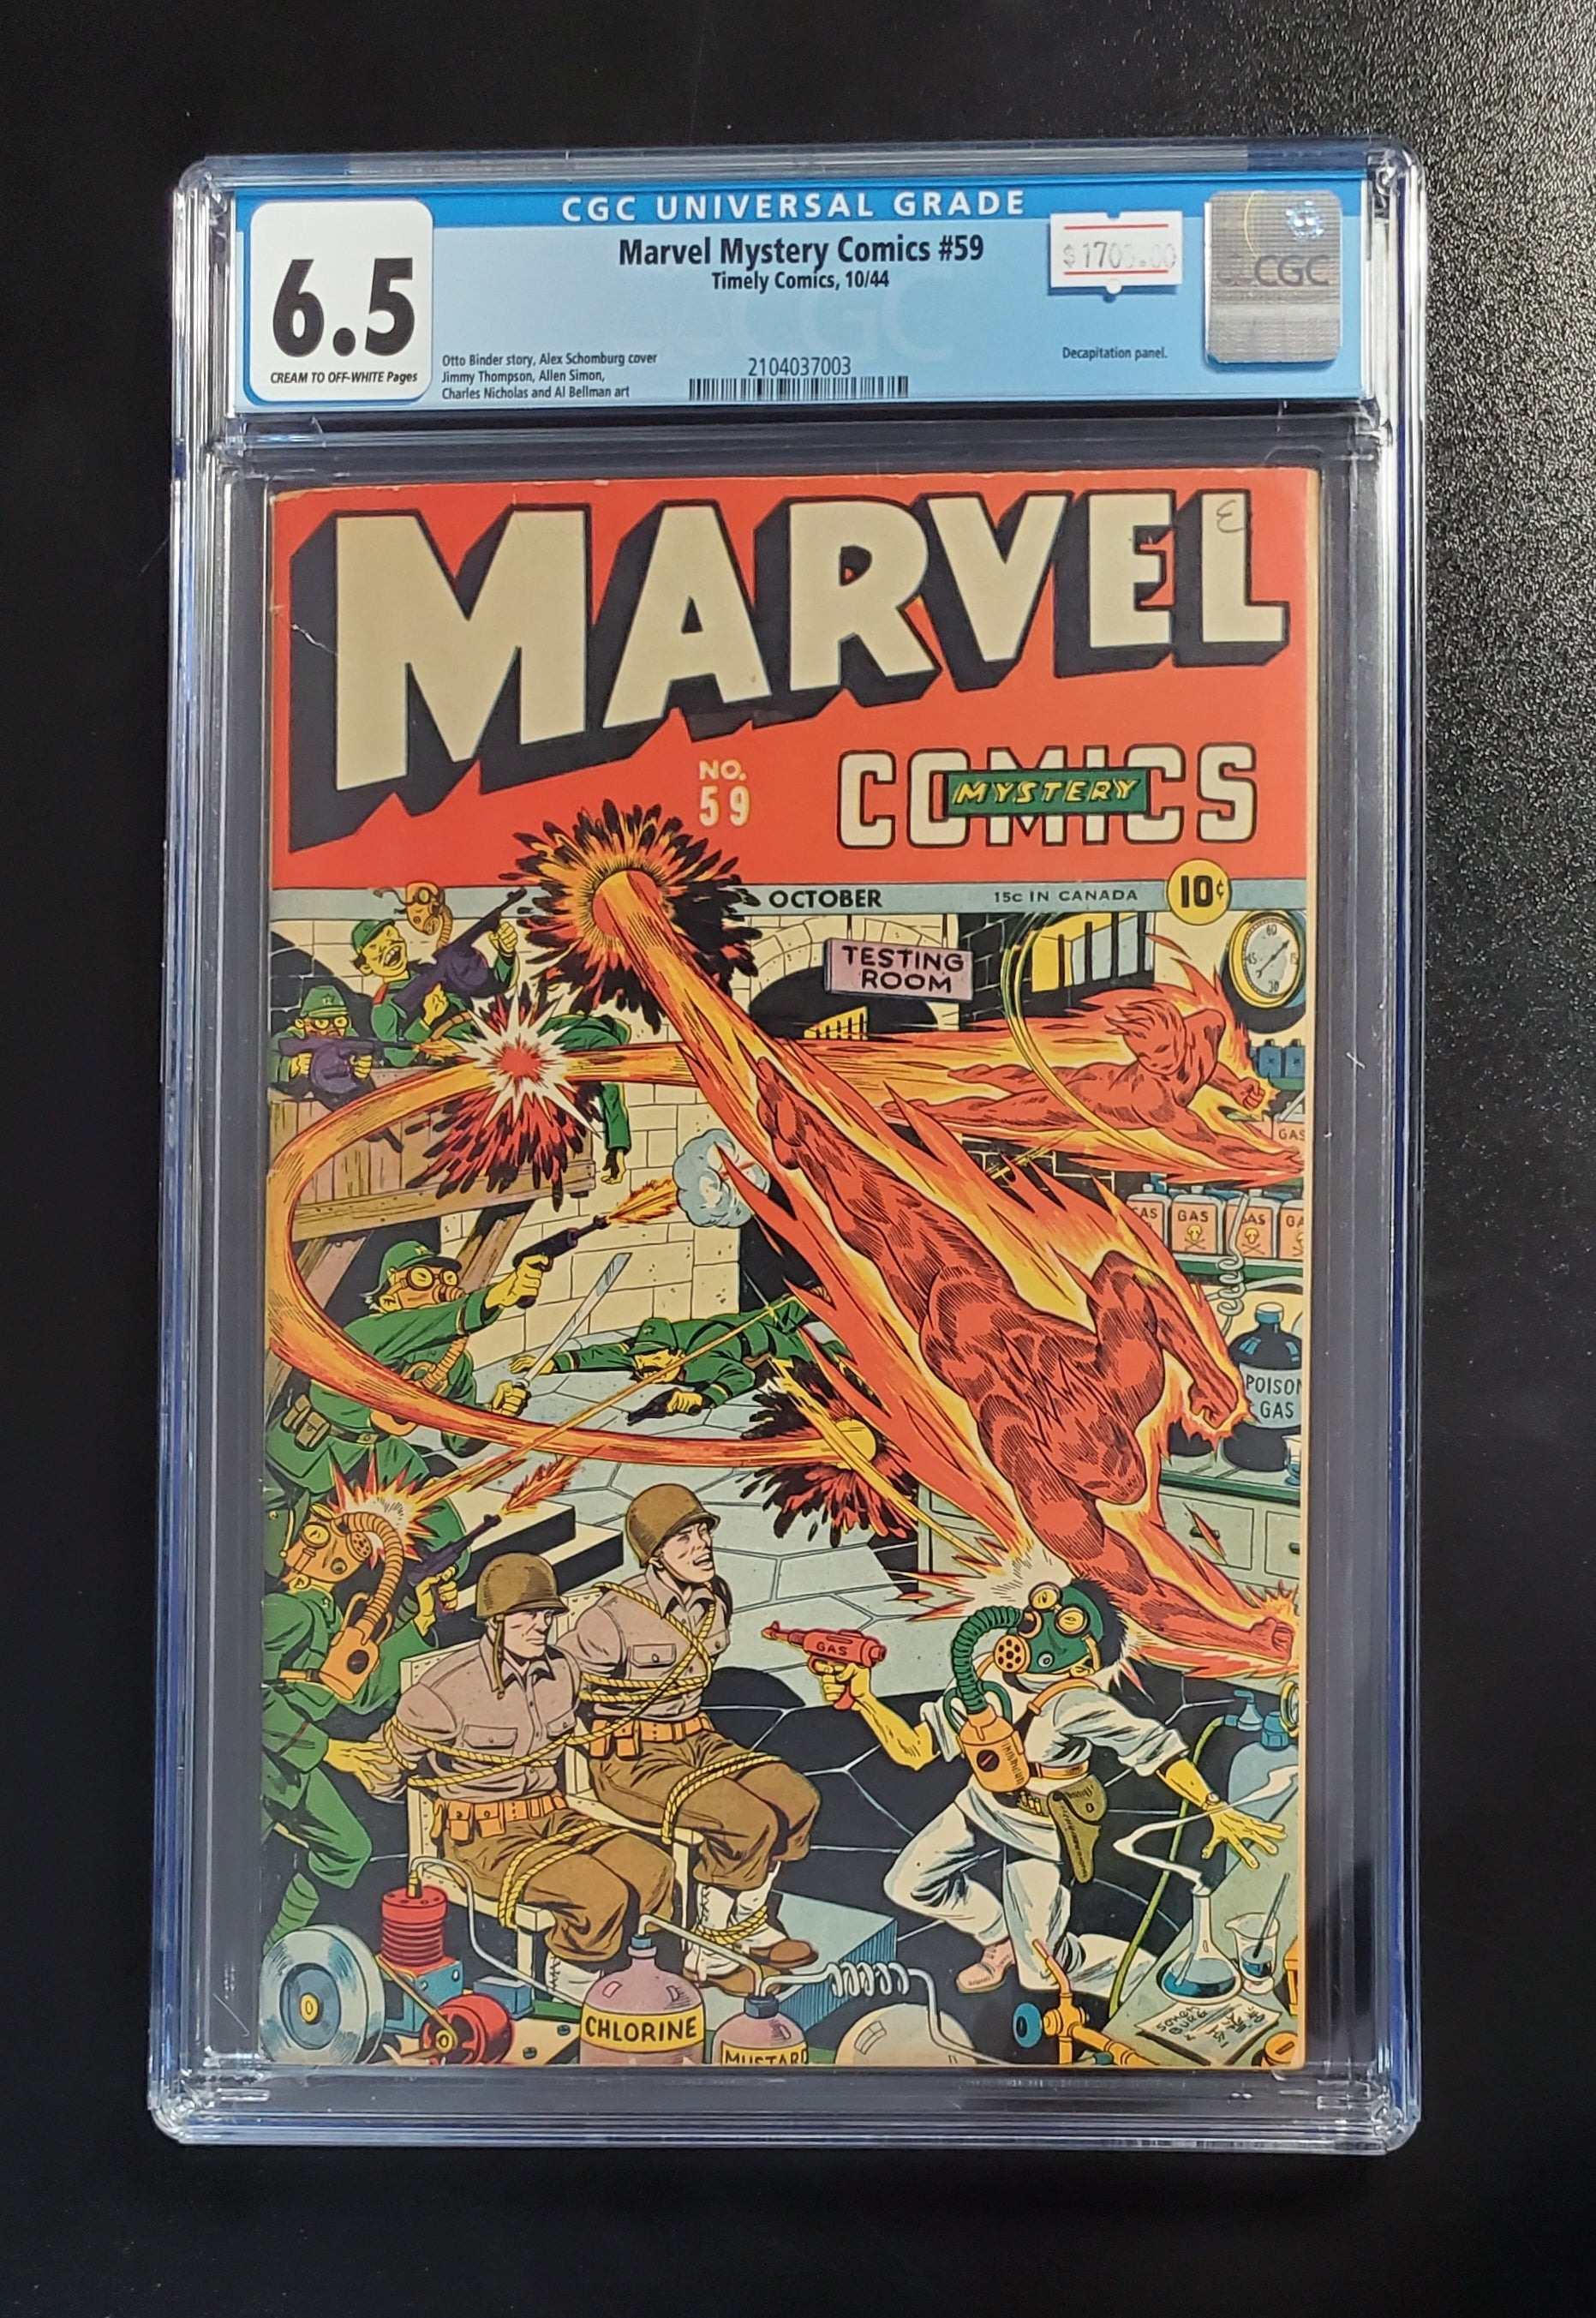 6.5 CGC Marvel Mystery Comics #59 1944